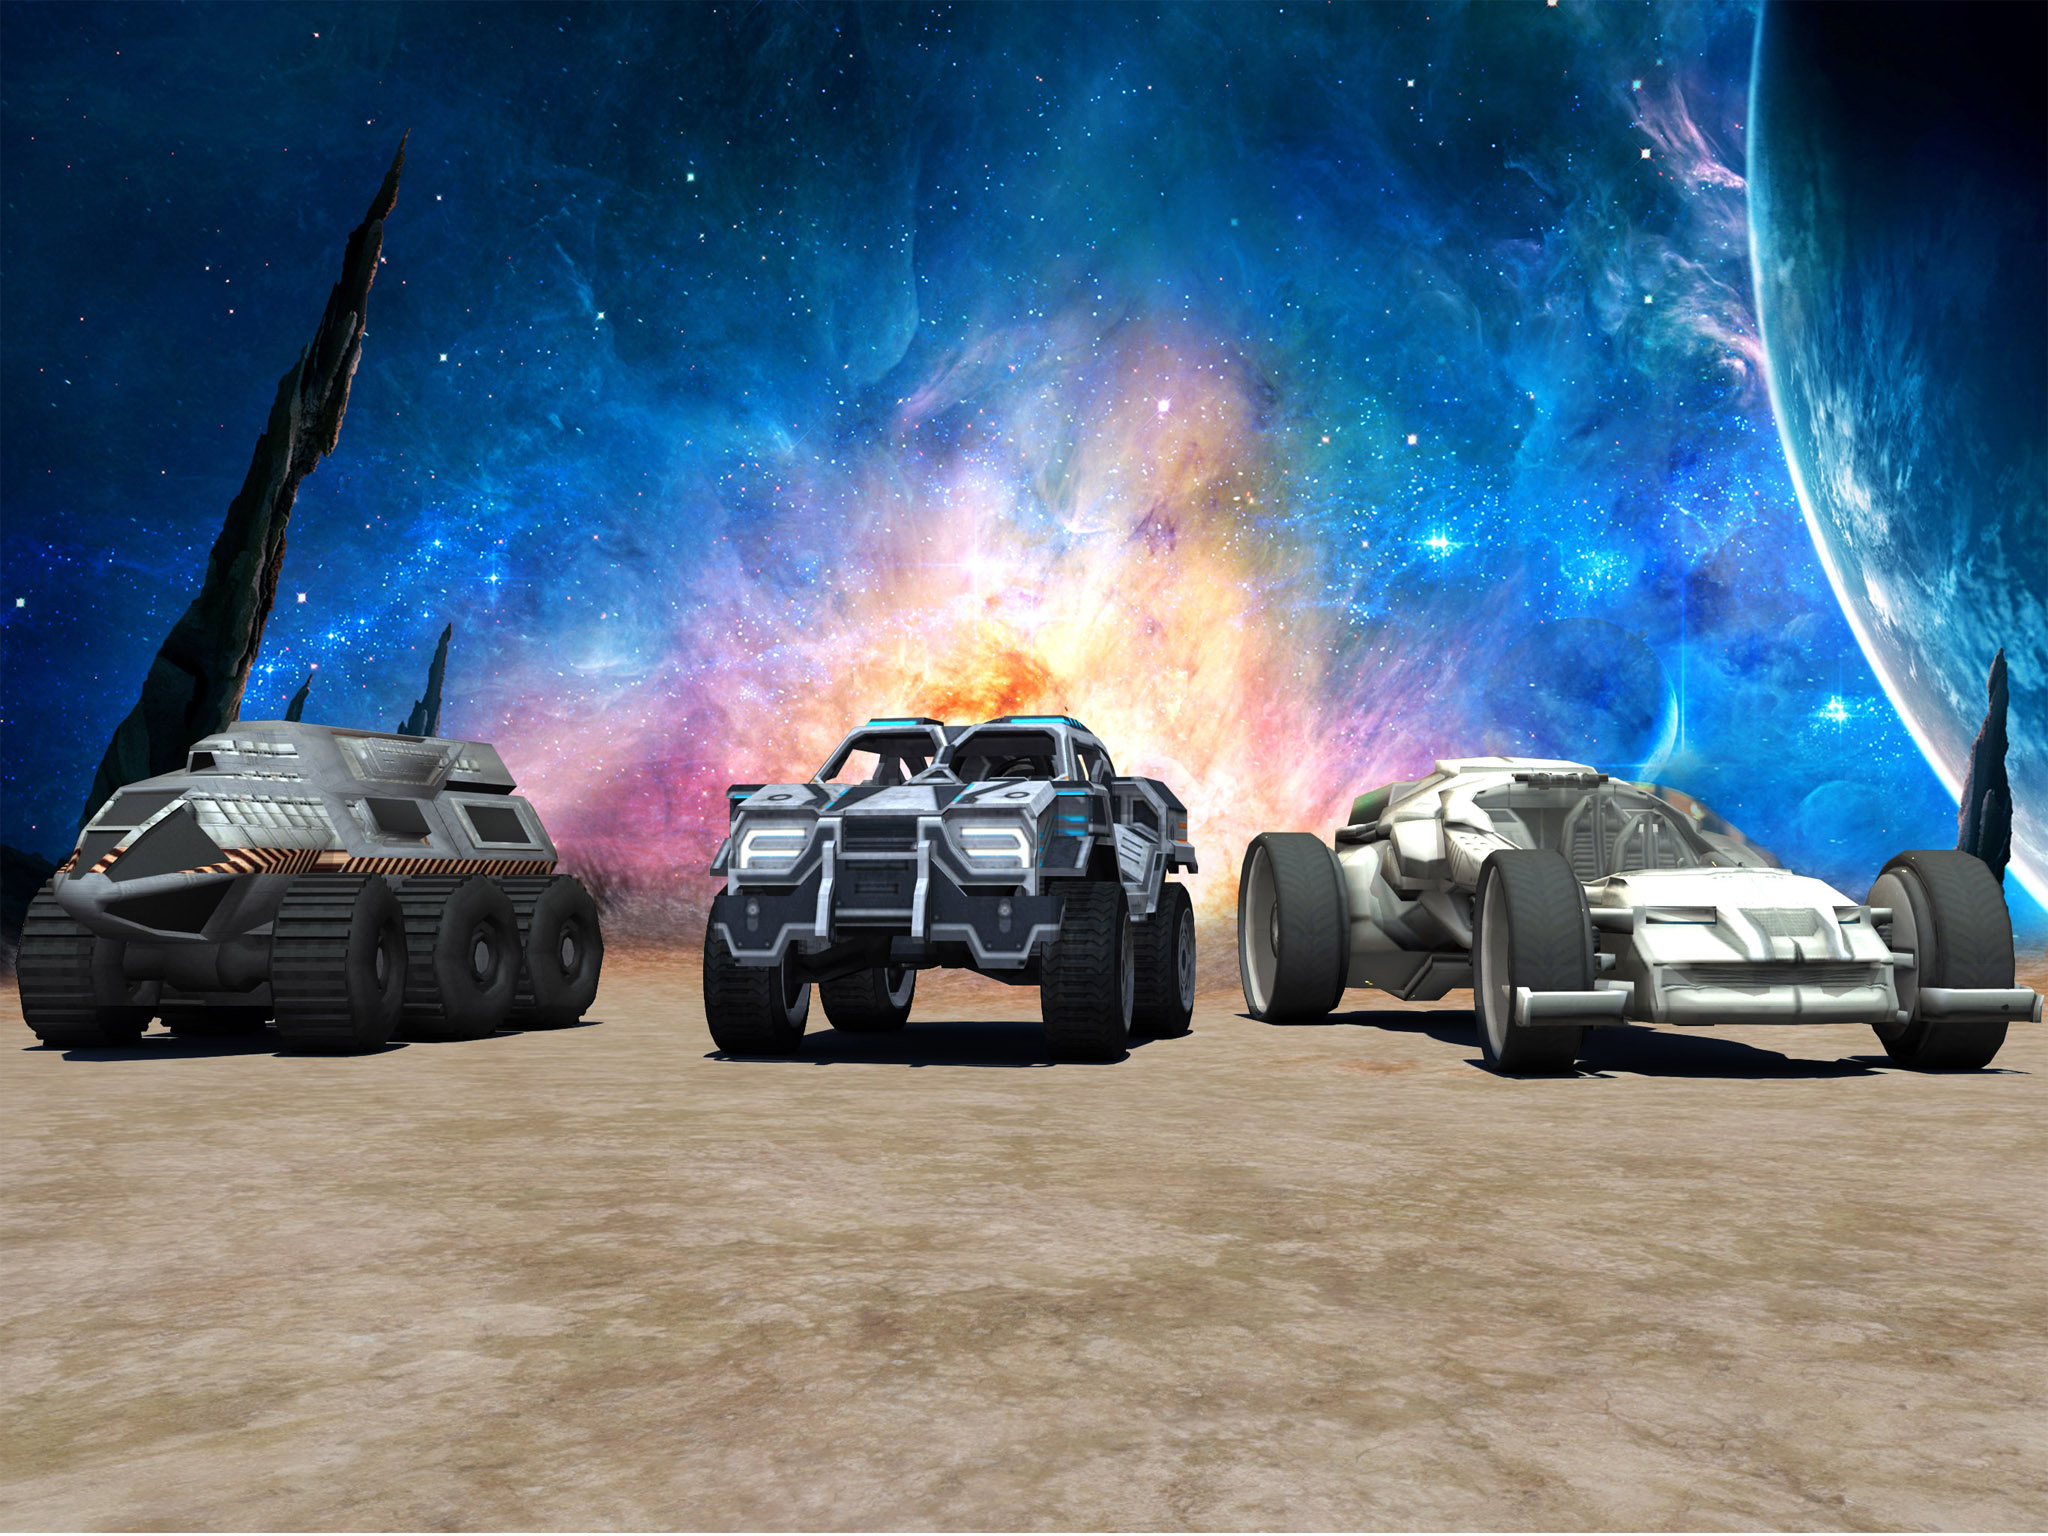 Jet Car Stunt Zone in space 3D